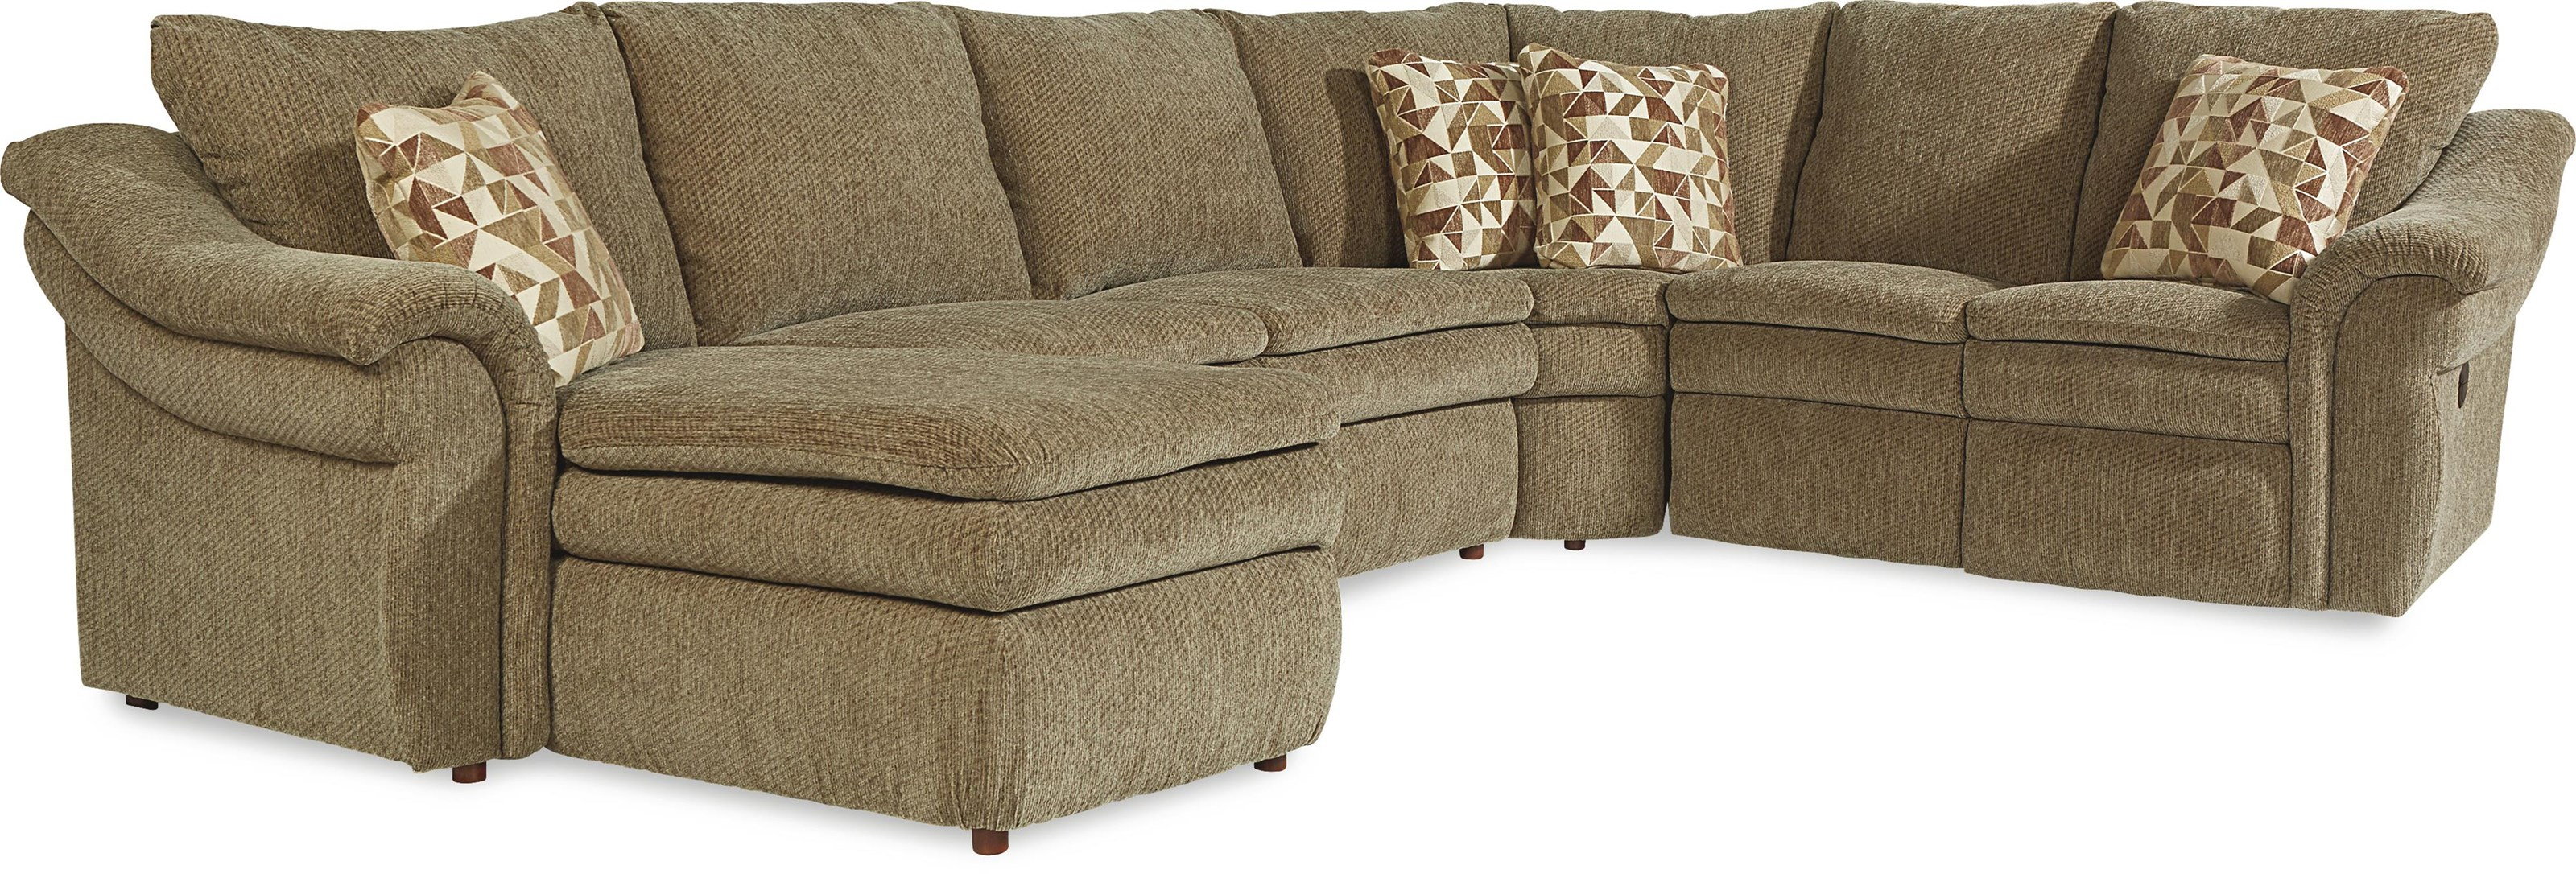 4 pc Sectional Right Arm Sitting Chaise